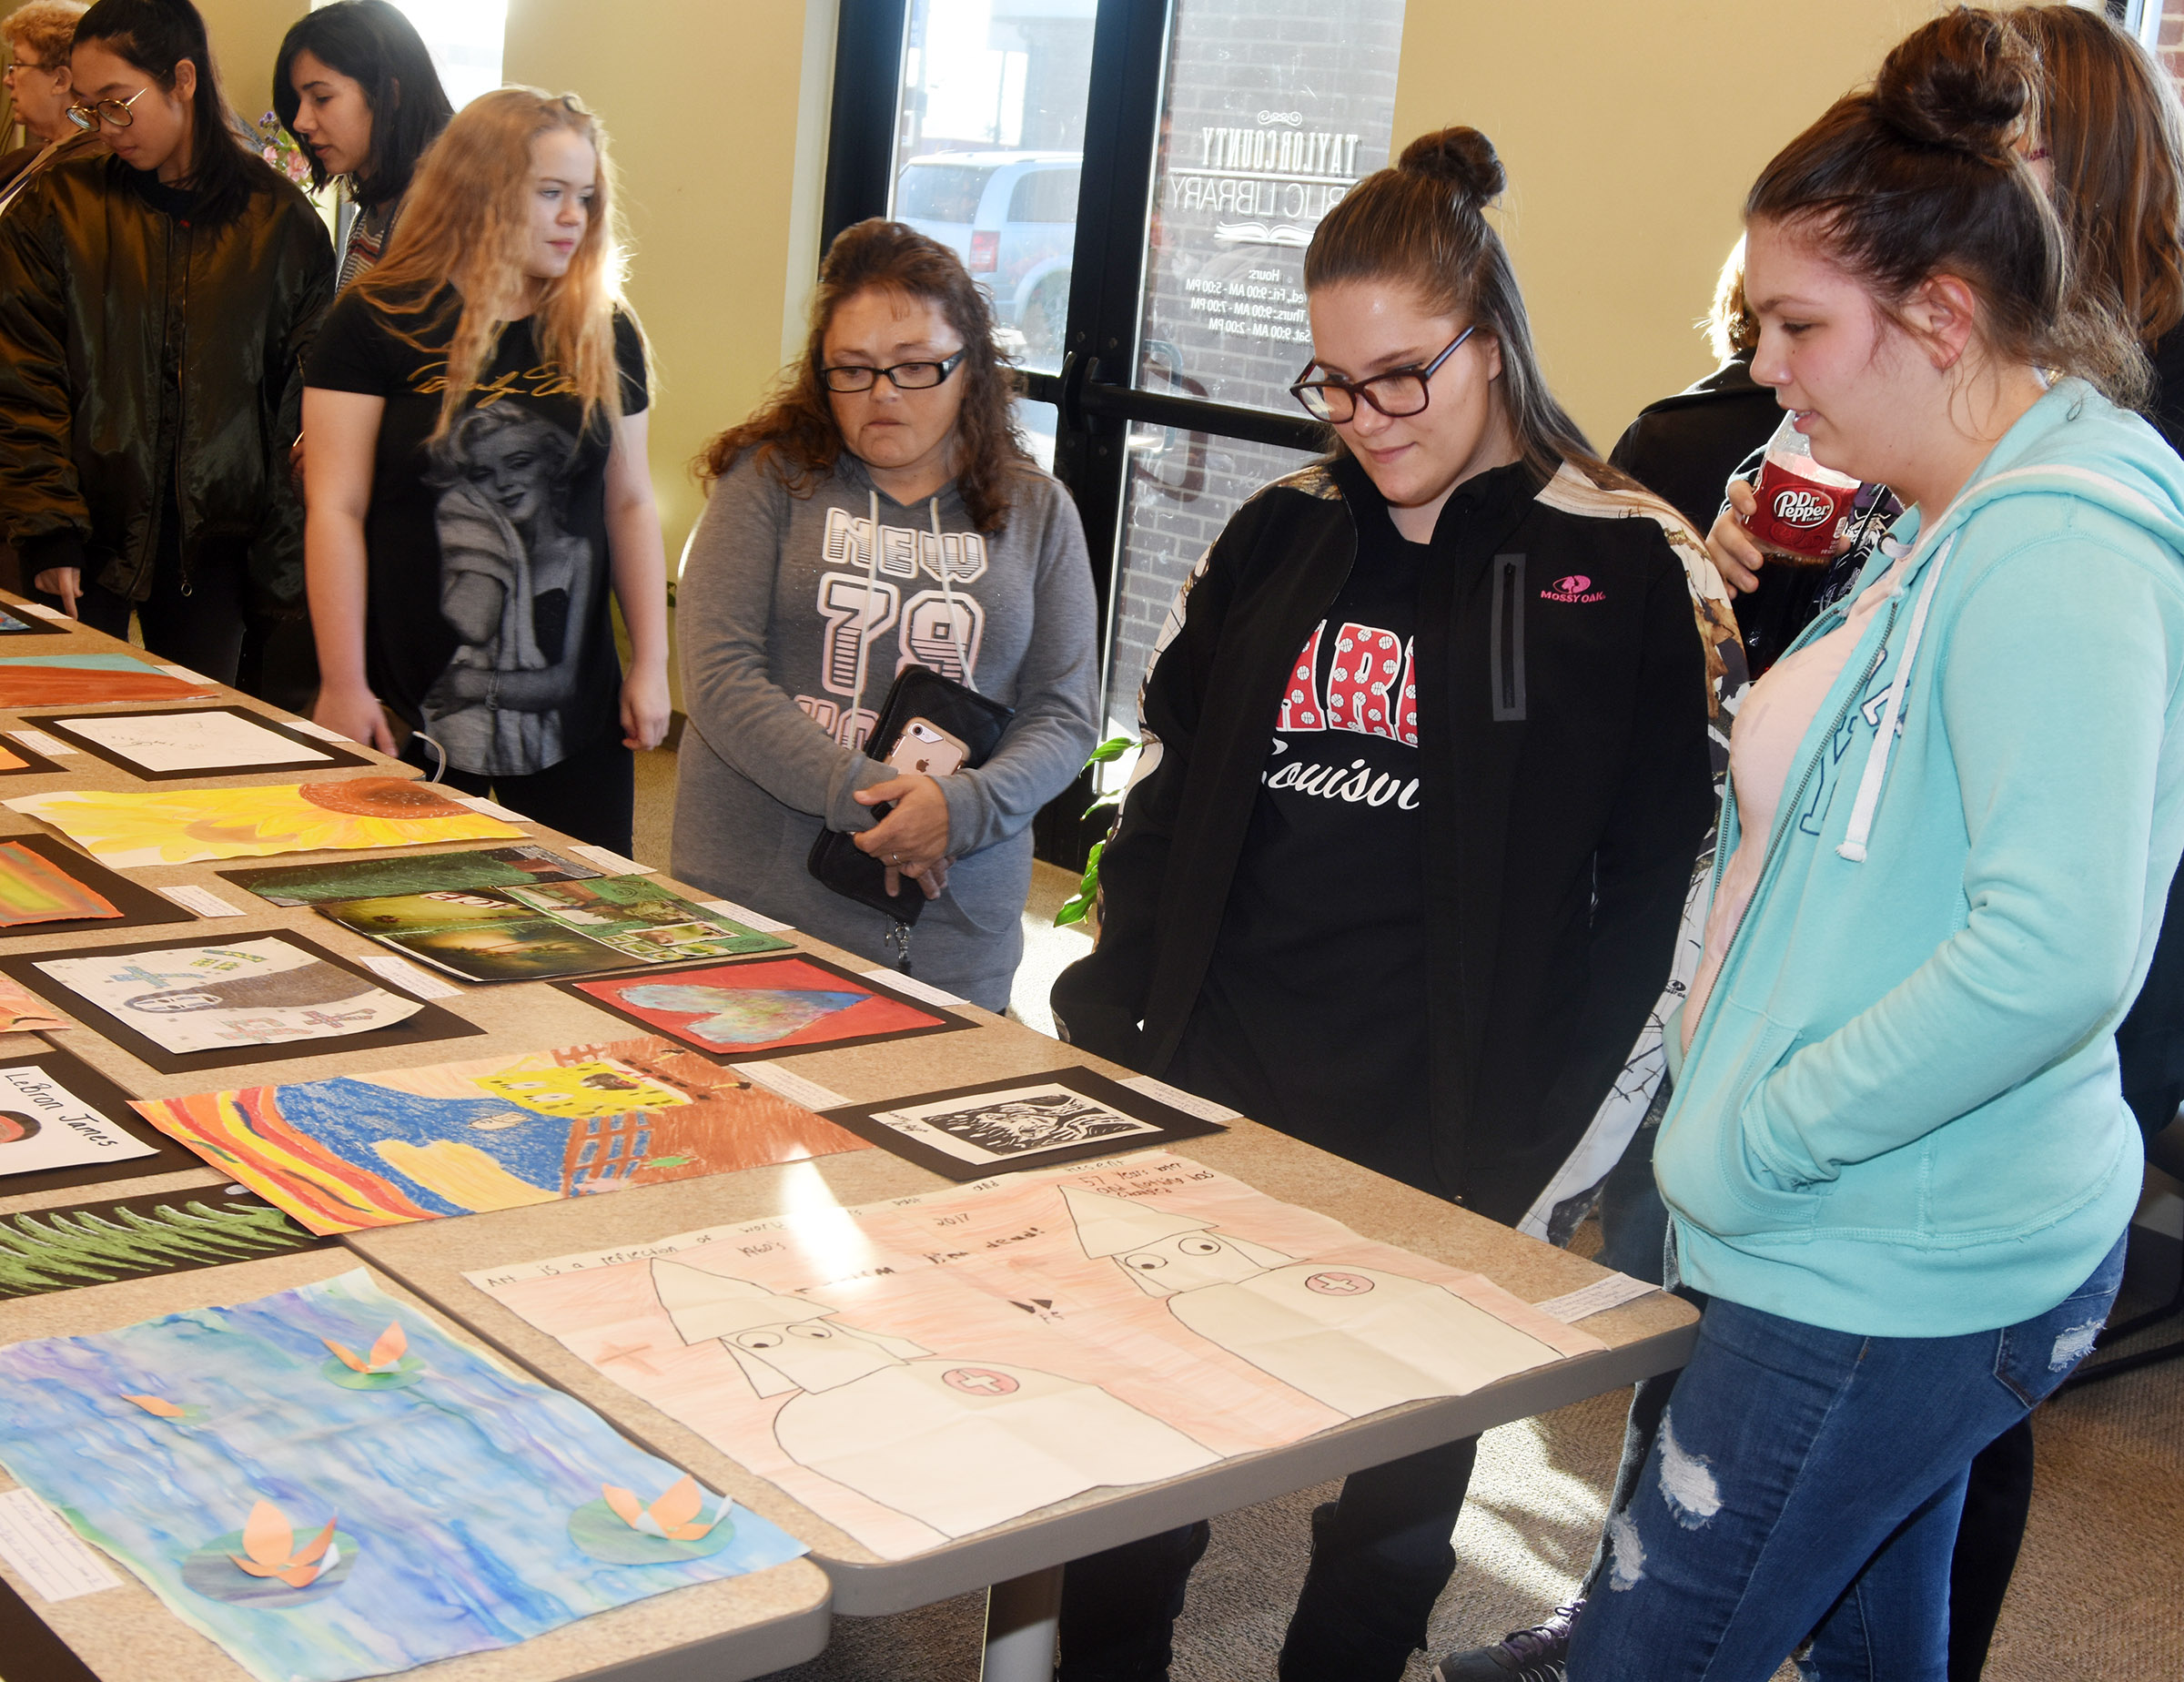 CHS sophomores Neveah Underwood, center, and Shelby Hunt look at the artwork.